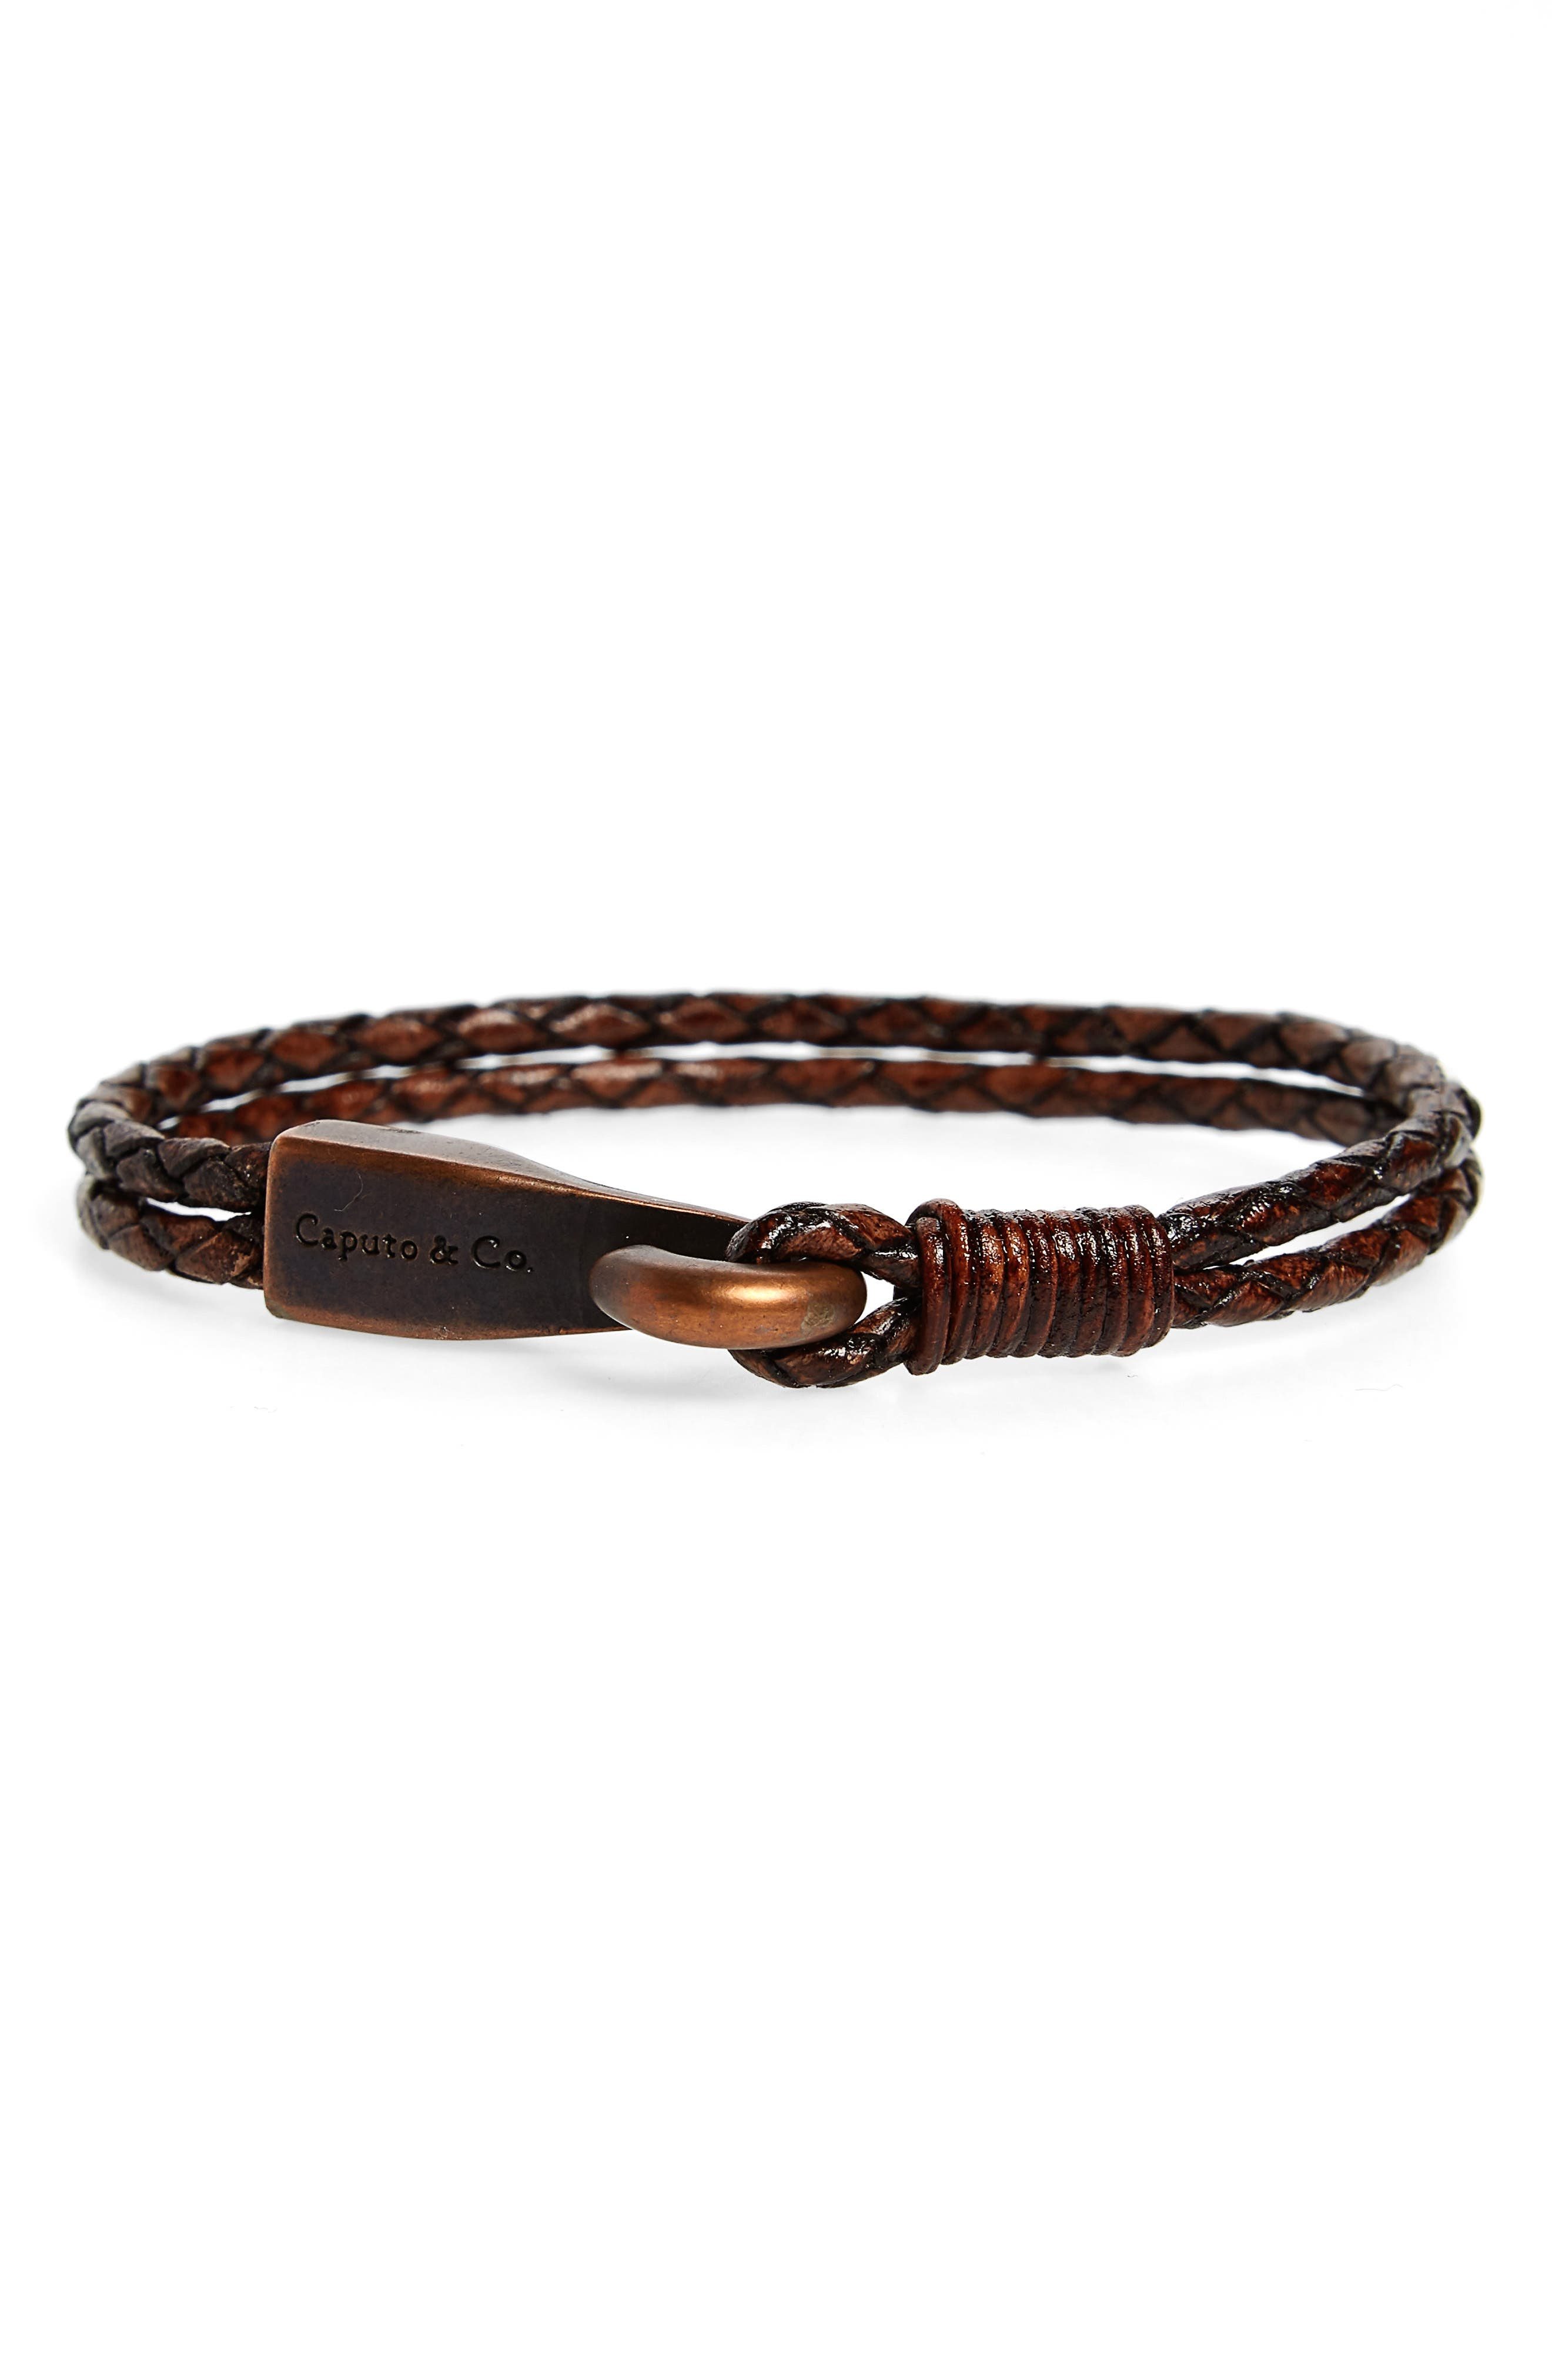 CAPUTO & CO.,                             Leather Bracelet,                             Main thumbnail 1, color,                             200